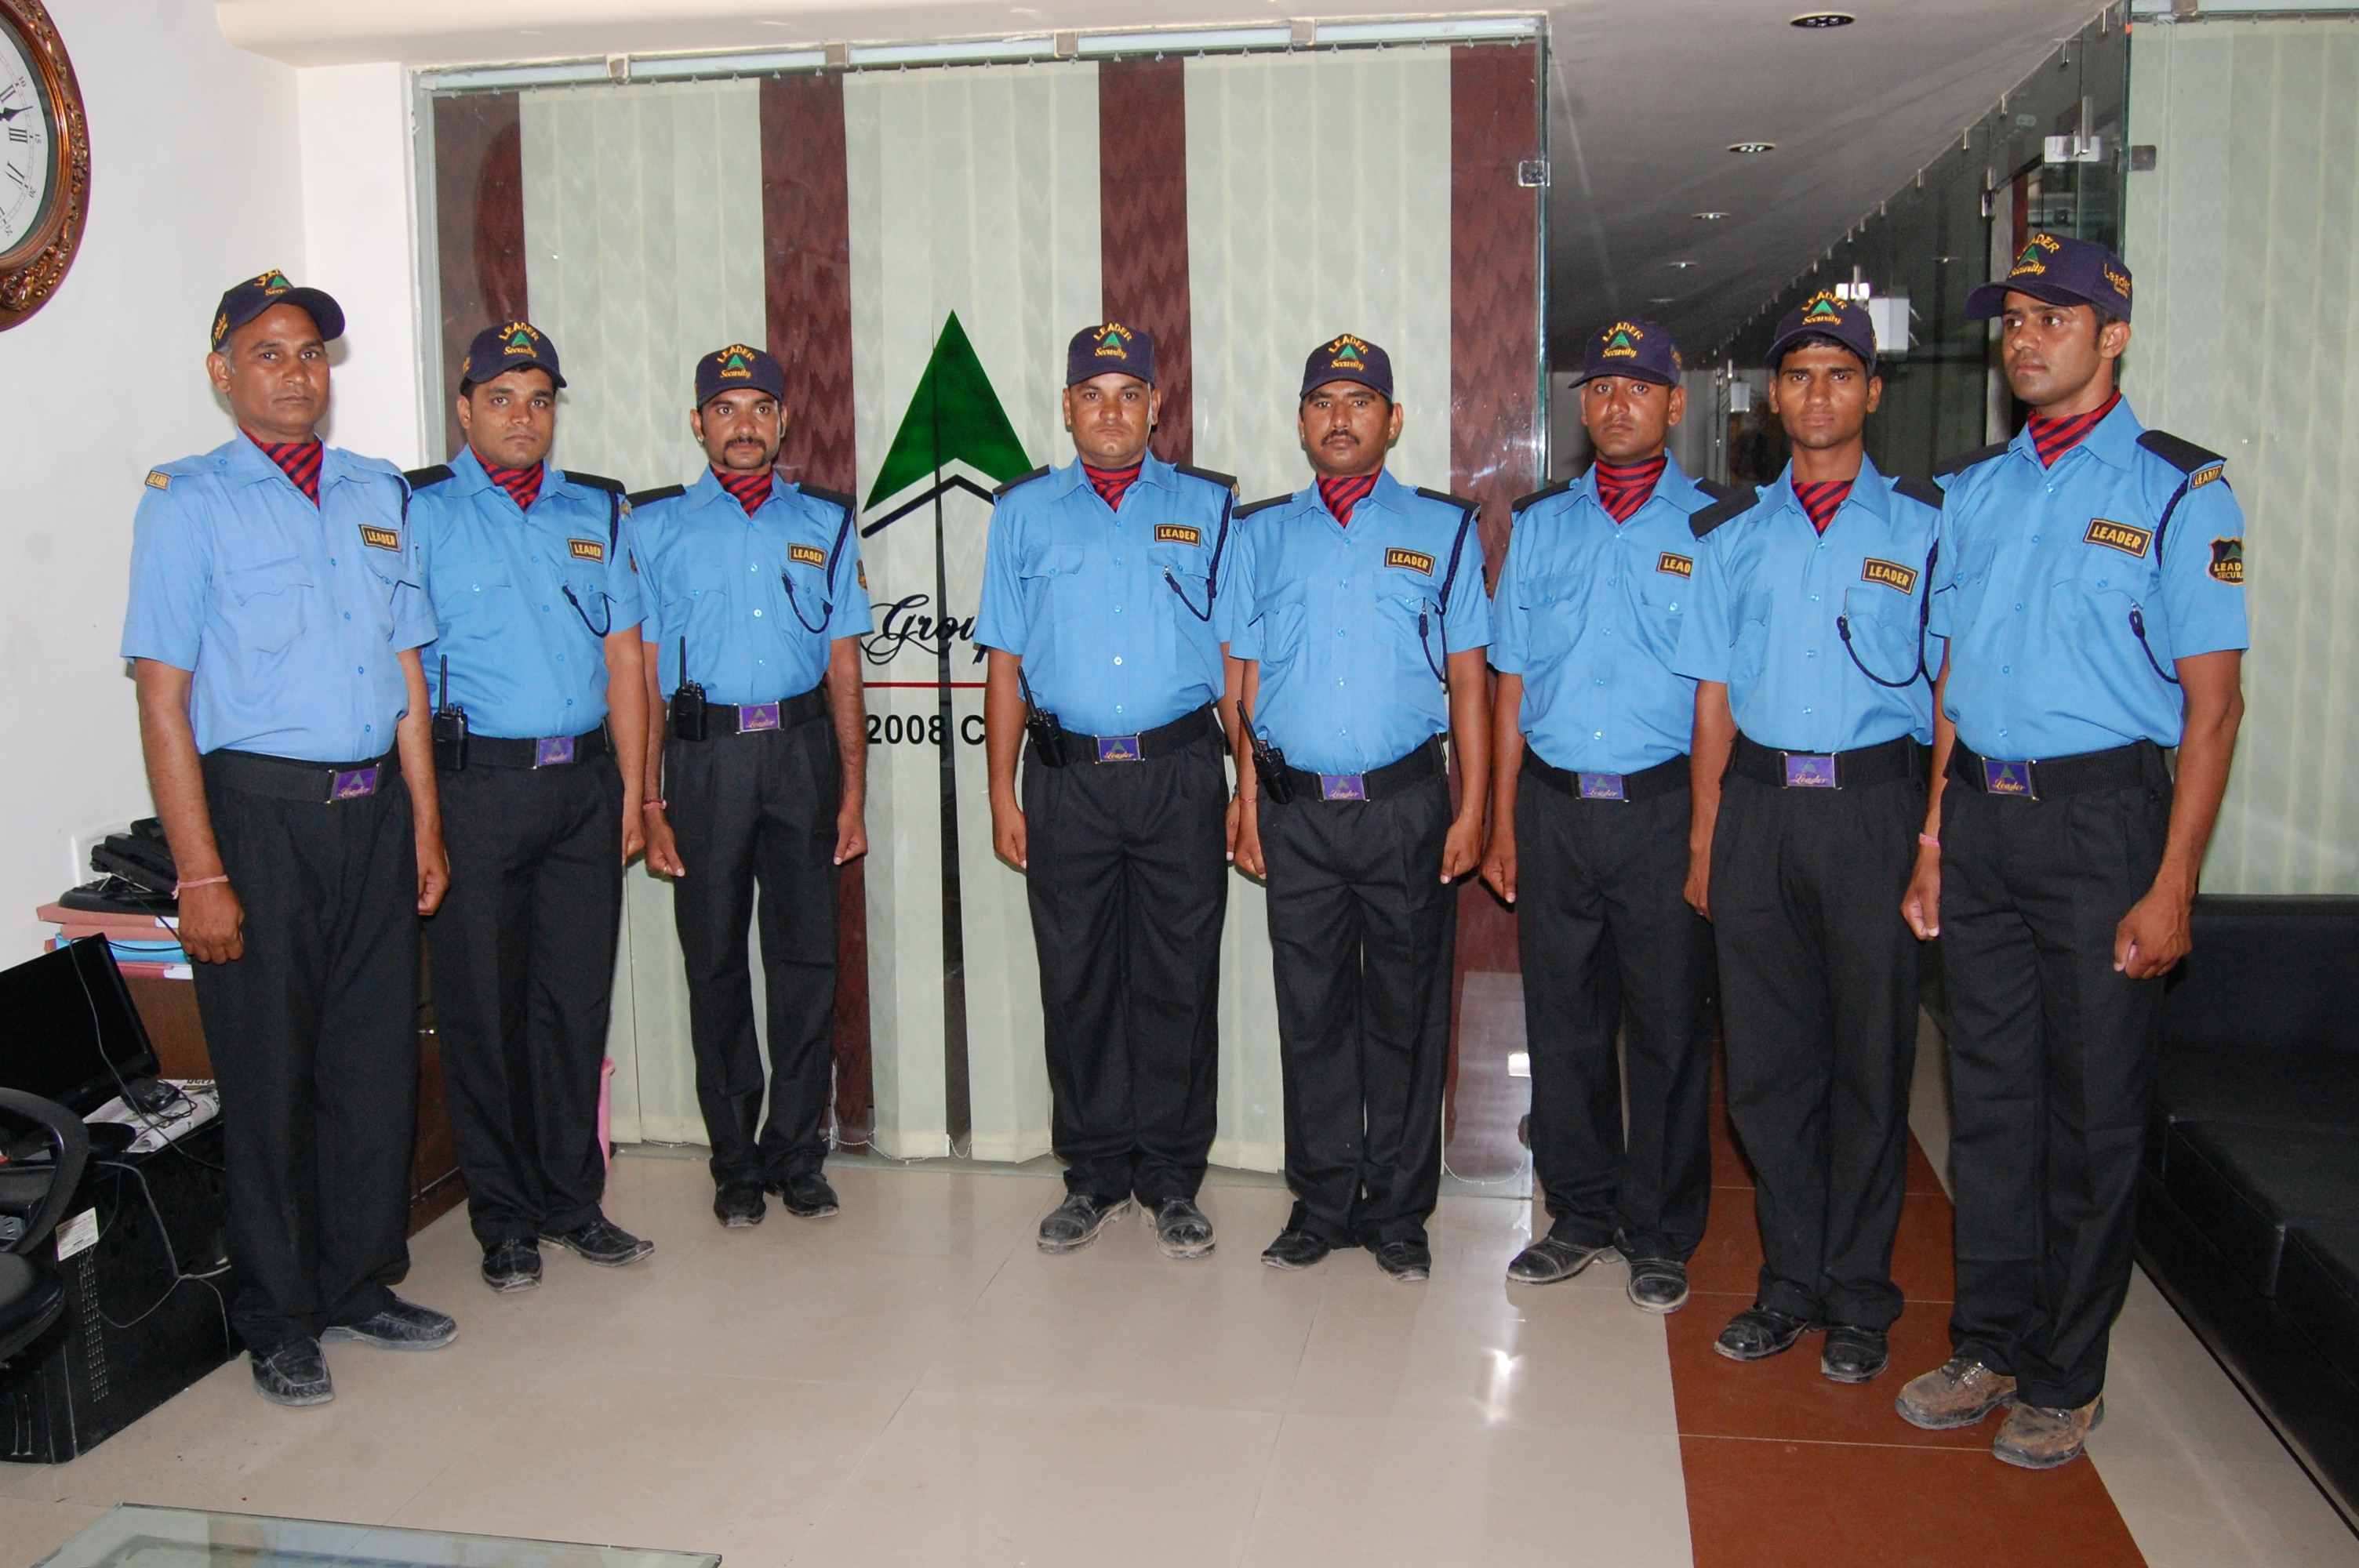 Welcome to Leader Star Security Ltd., INDORE (MP)  Our goal is to make like safer, we work closely with our customers to establish their mission, priorities & performance targets. We strive 100% client satisfaction by providing you with involved, focused and trained security officers.